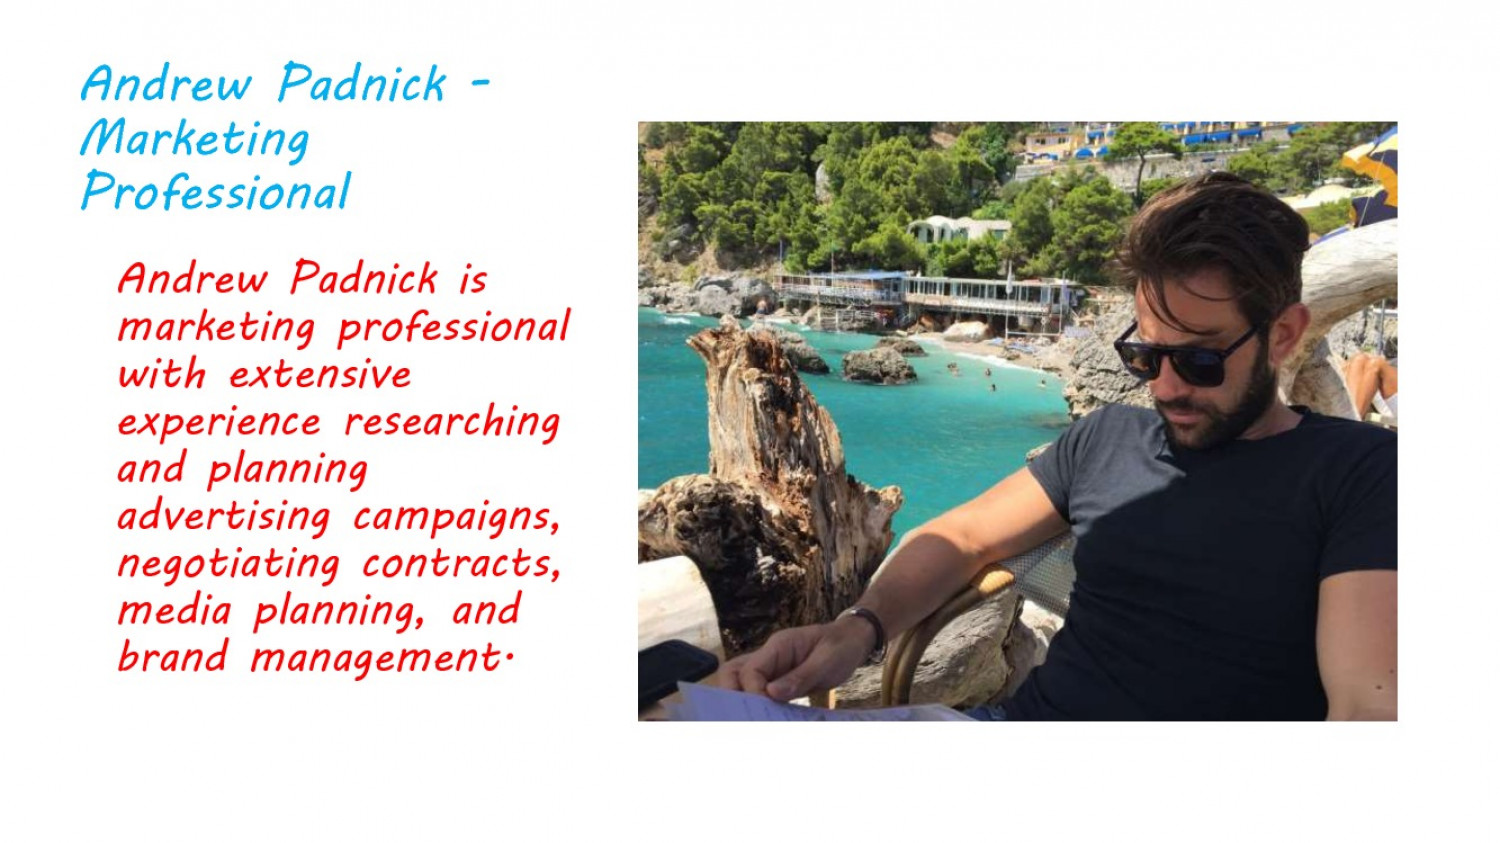 """Andrew Padnick is marketing professional with extensive experienced researching  and planning advertising campaigns, negotiating contracts, media planning, and brand management."" Infographic"